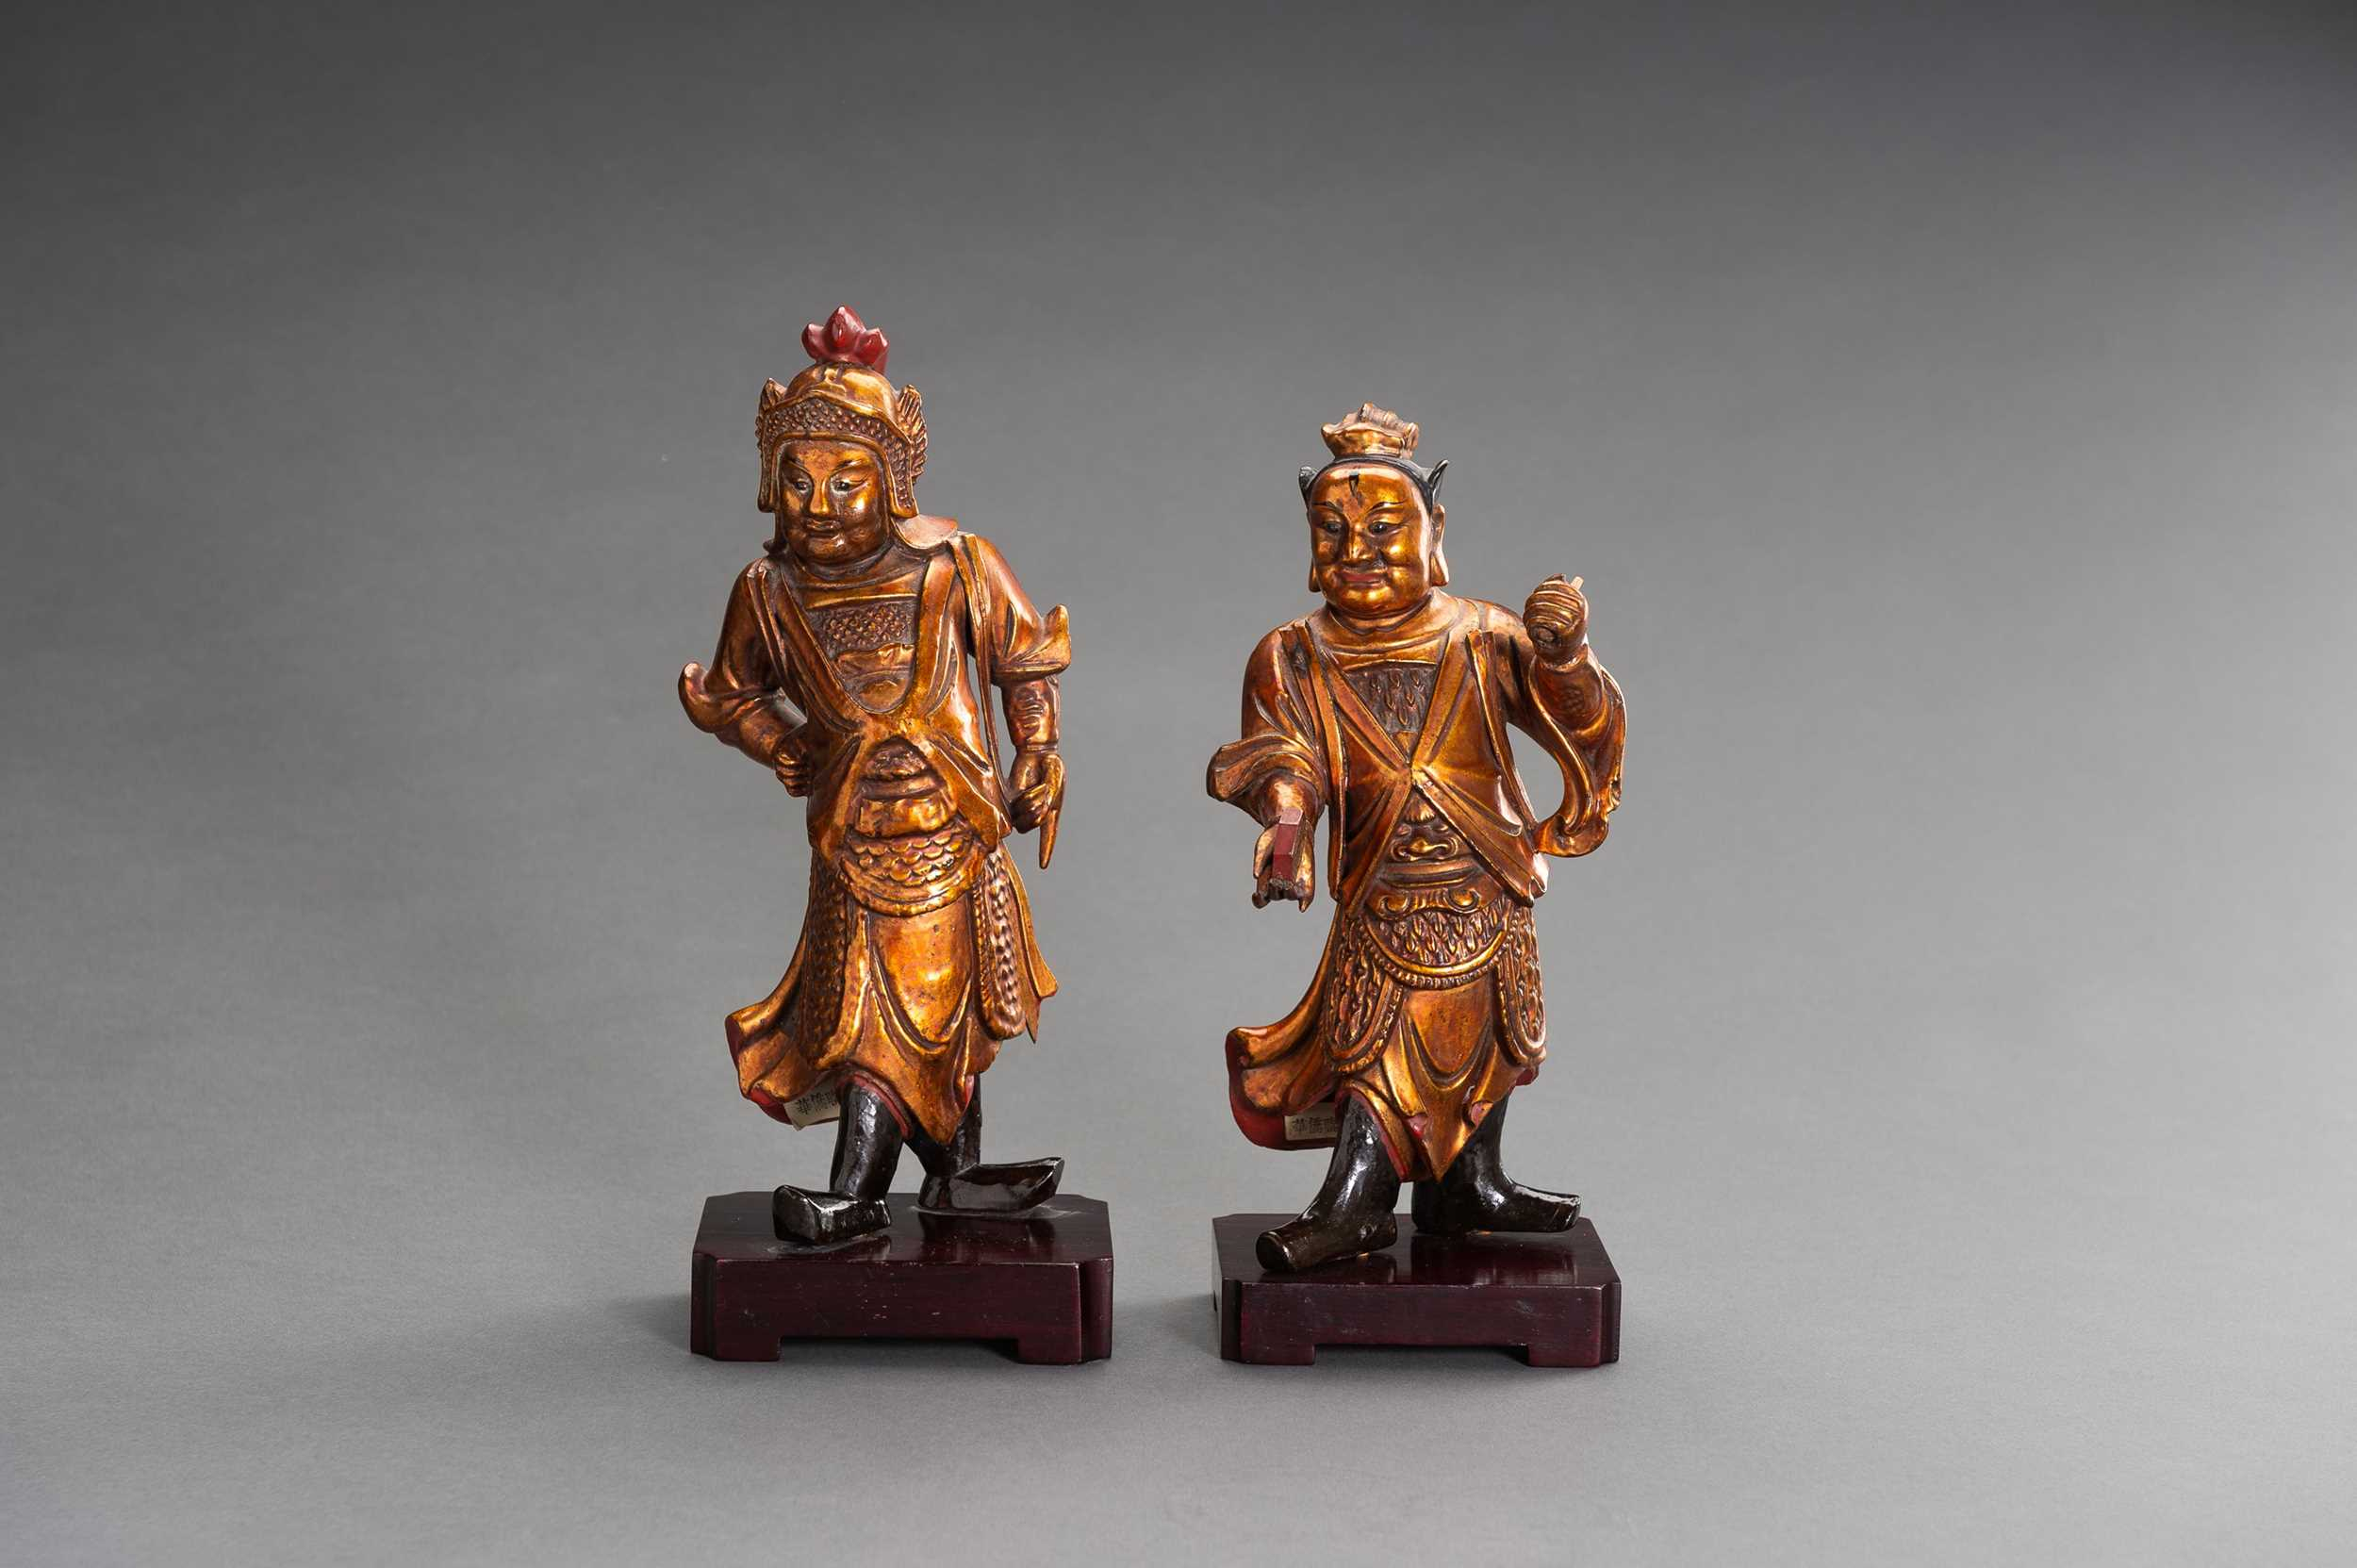 Lot 140 - A PAIR OF GILT-LACQUERED 'HEAVENLY GUARDIAN' WOOD FIGURES